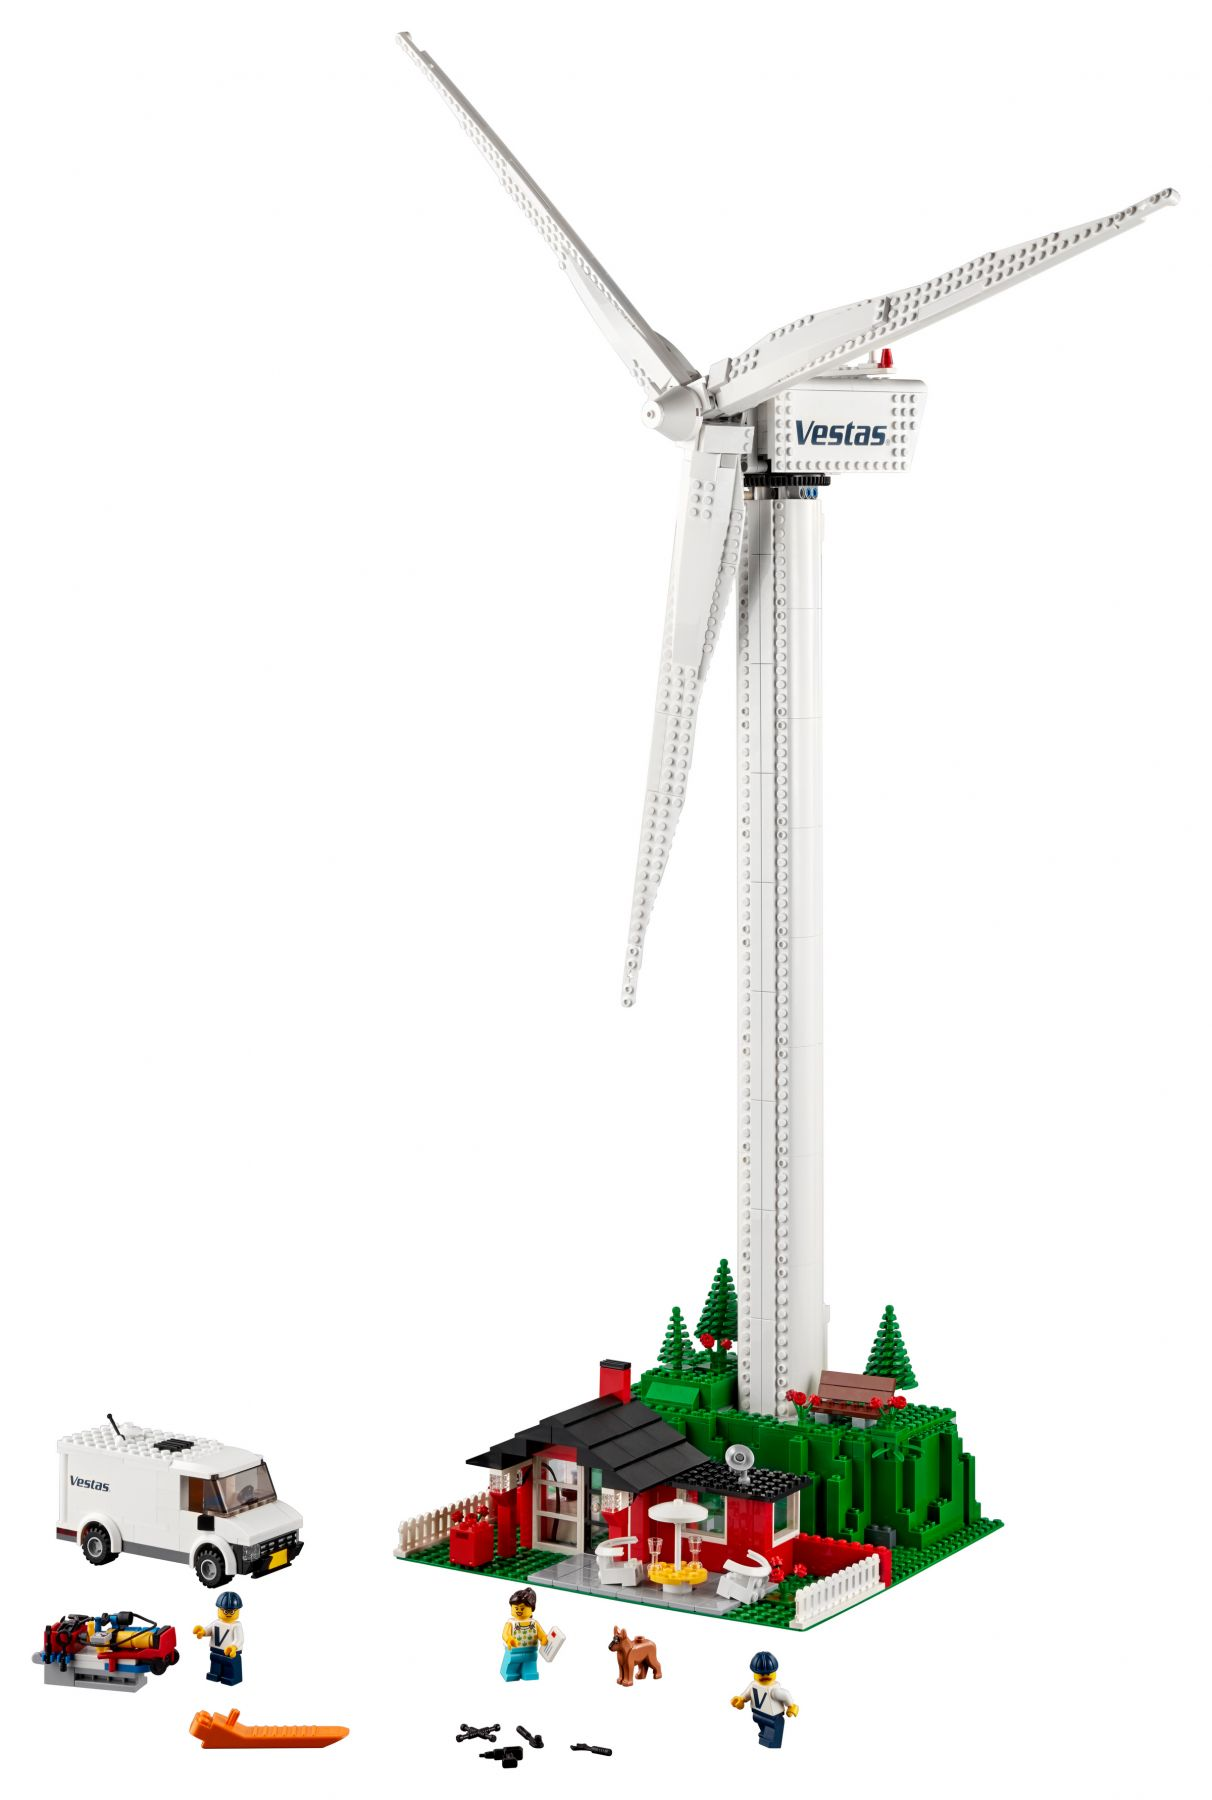 LEGO Advanced Models 10268 Vestas® Windkraftanlage